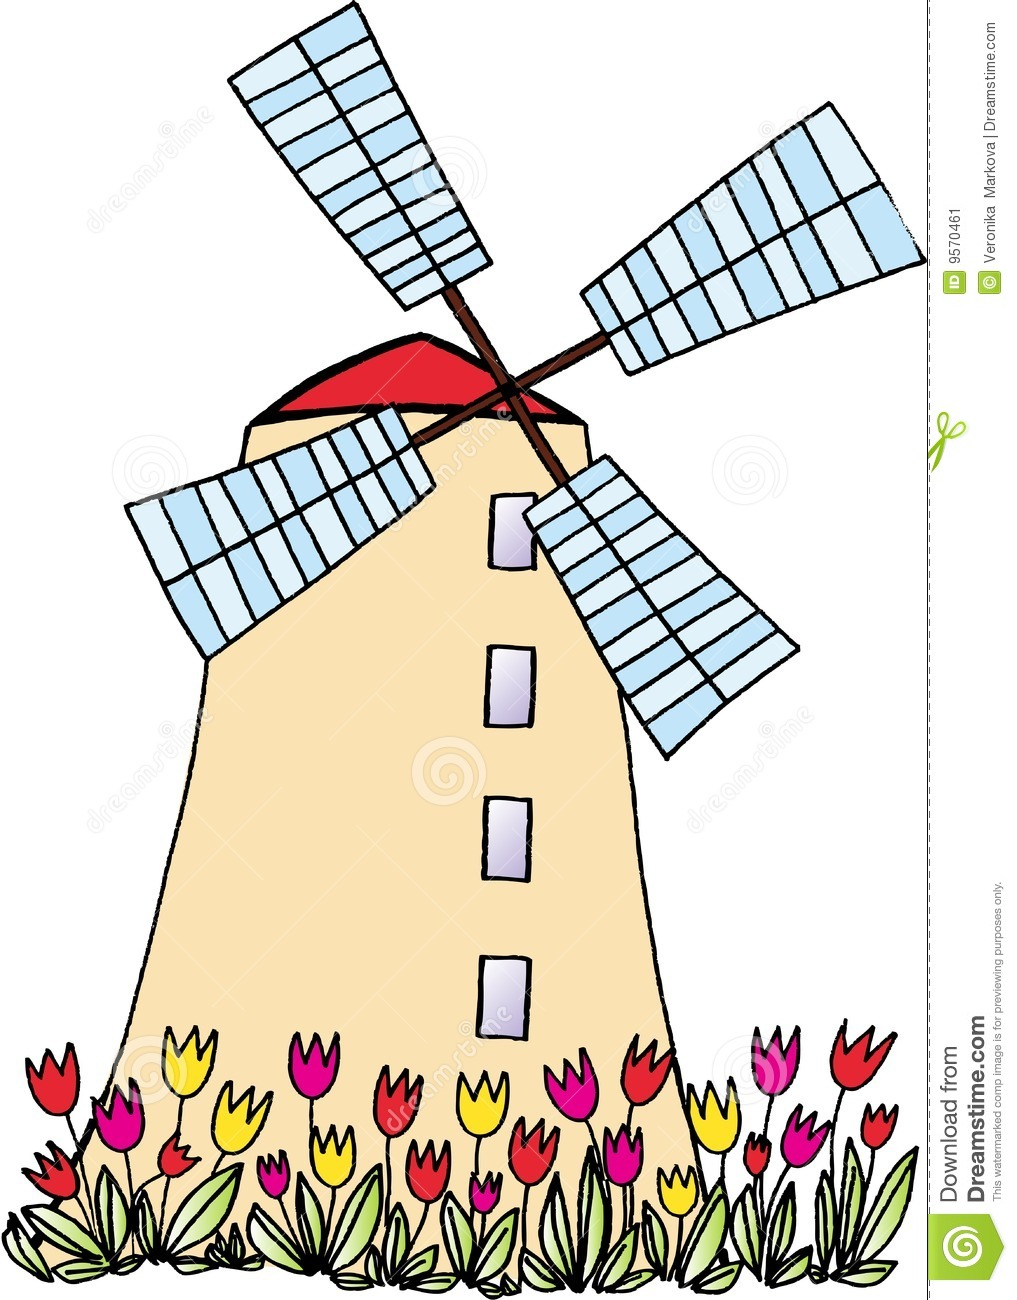 Dutch Windmill Drawing at GetDrawings.com.